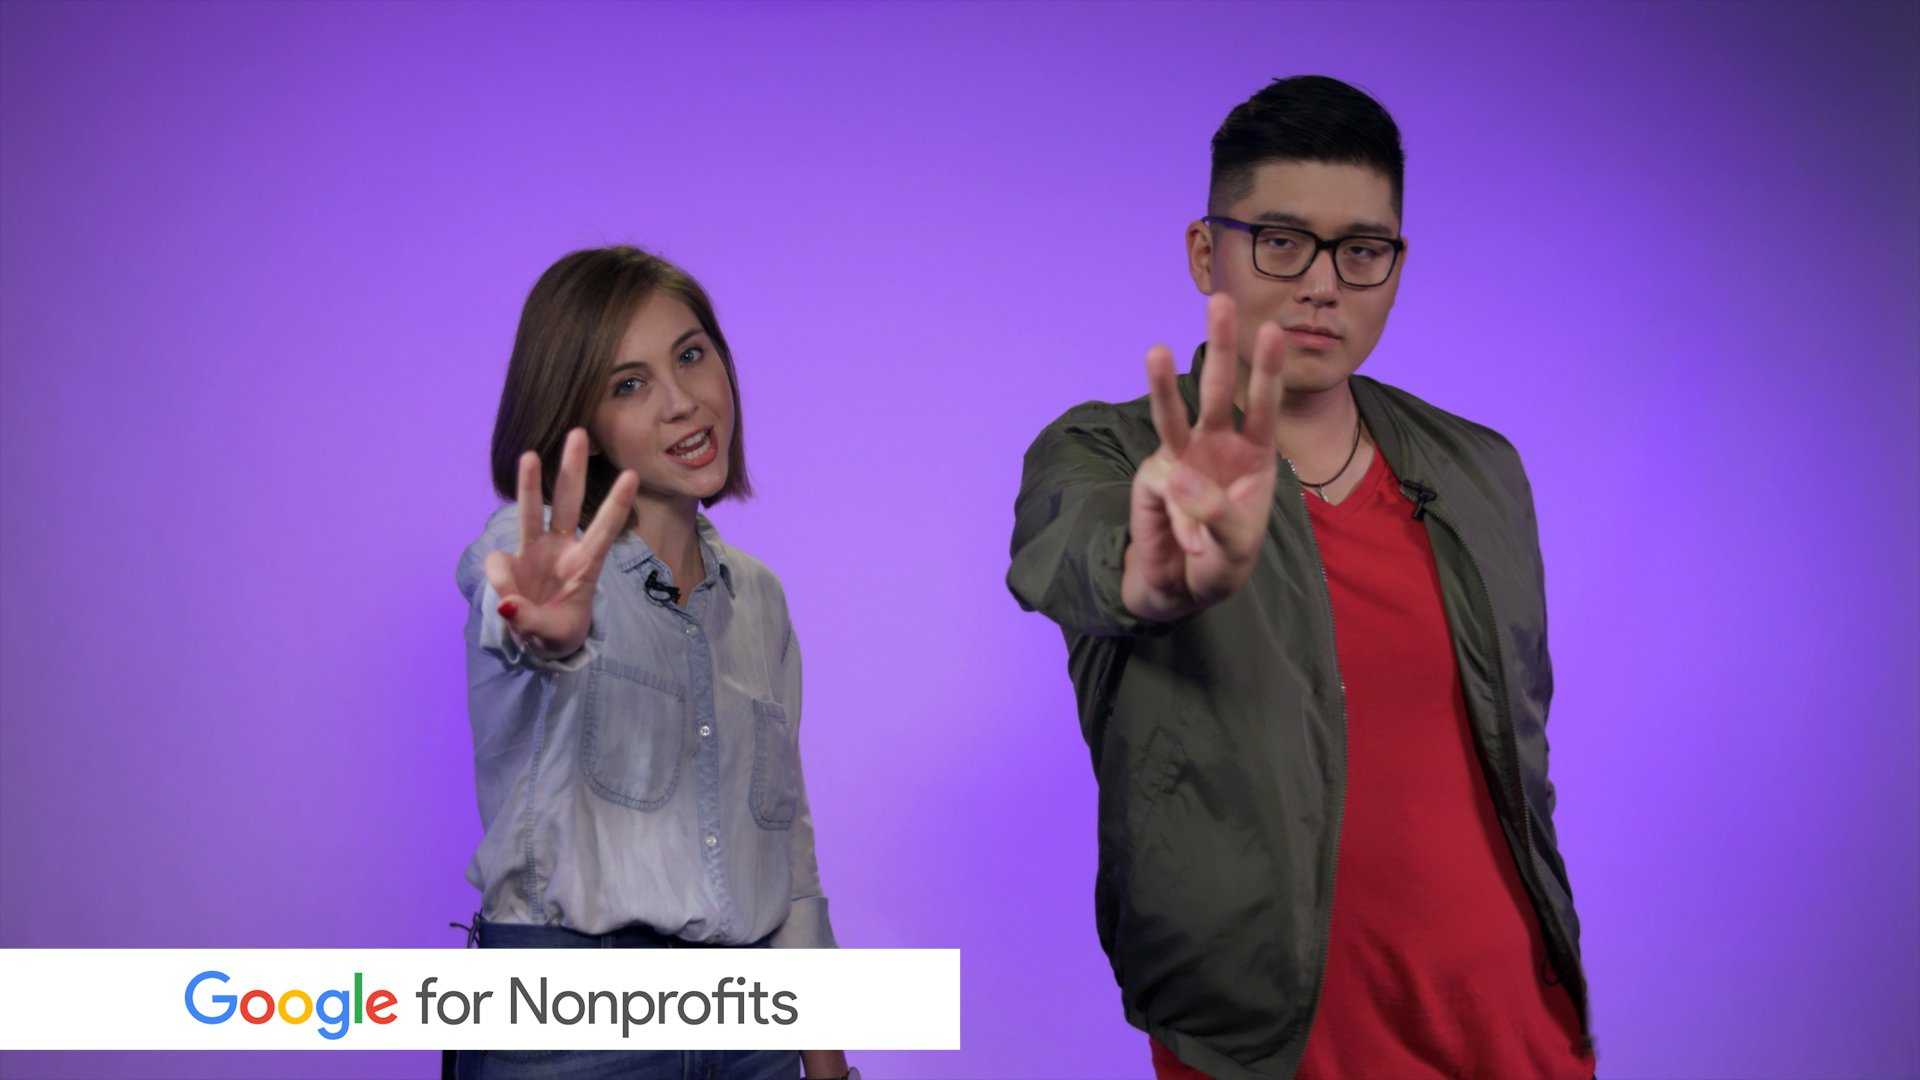 G4NP in Three | Ep. 1: What is Google for Nonprofits?